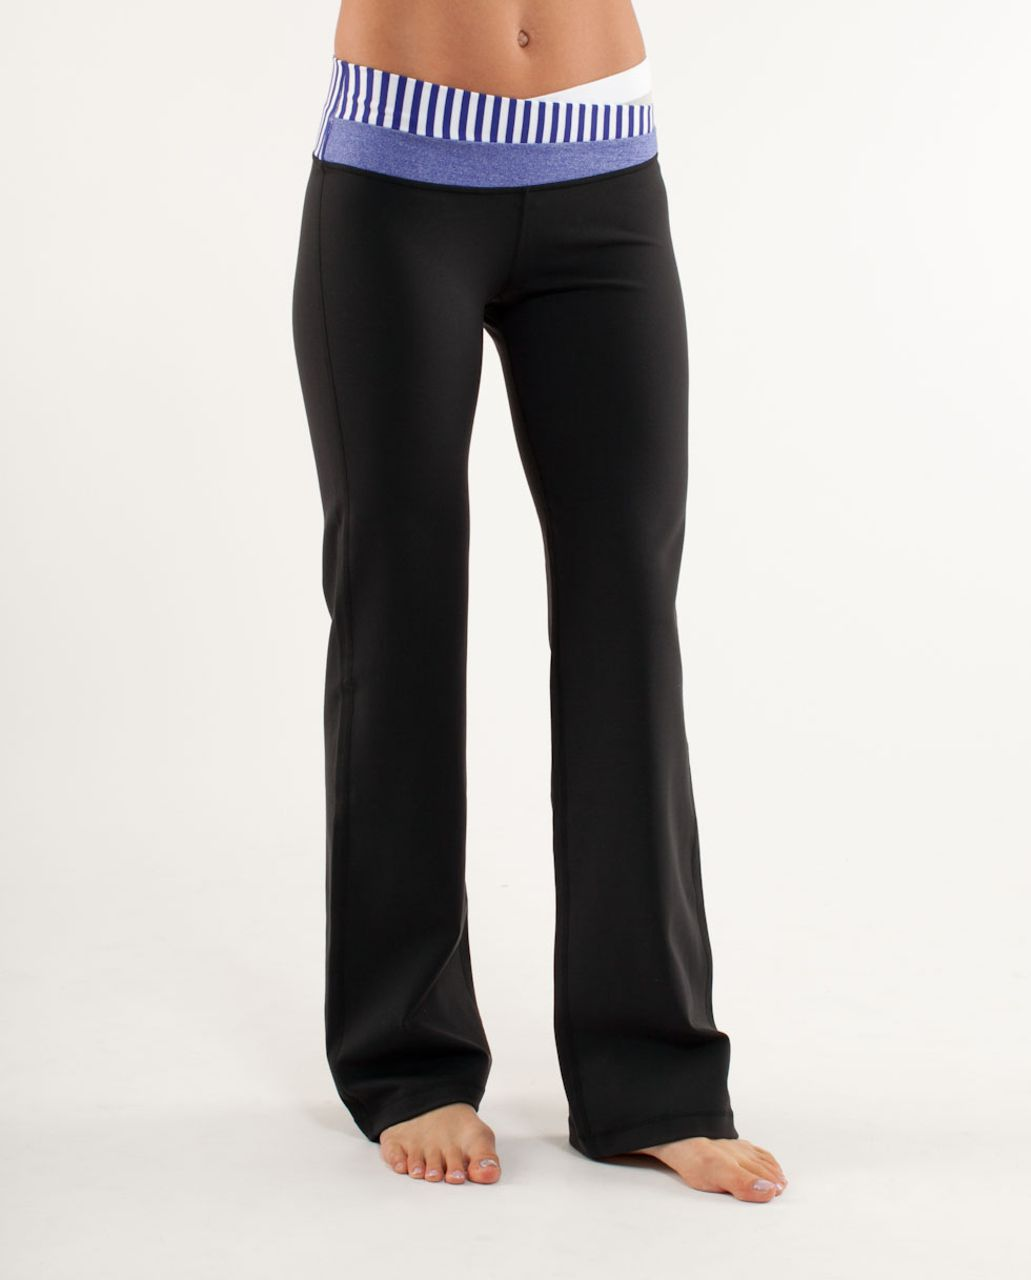 Lululemon Astro Pant (Regular) - Black /  White Silver Spoon Wide Bold Multi Stripe /  Pigment Blue White Narrow Bold Stre